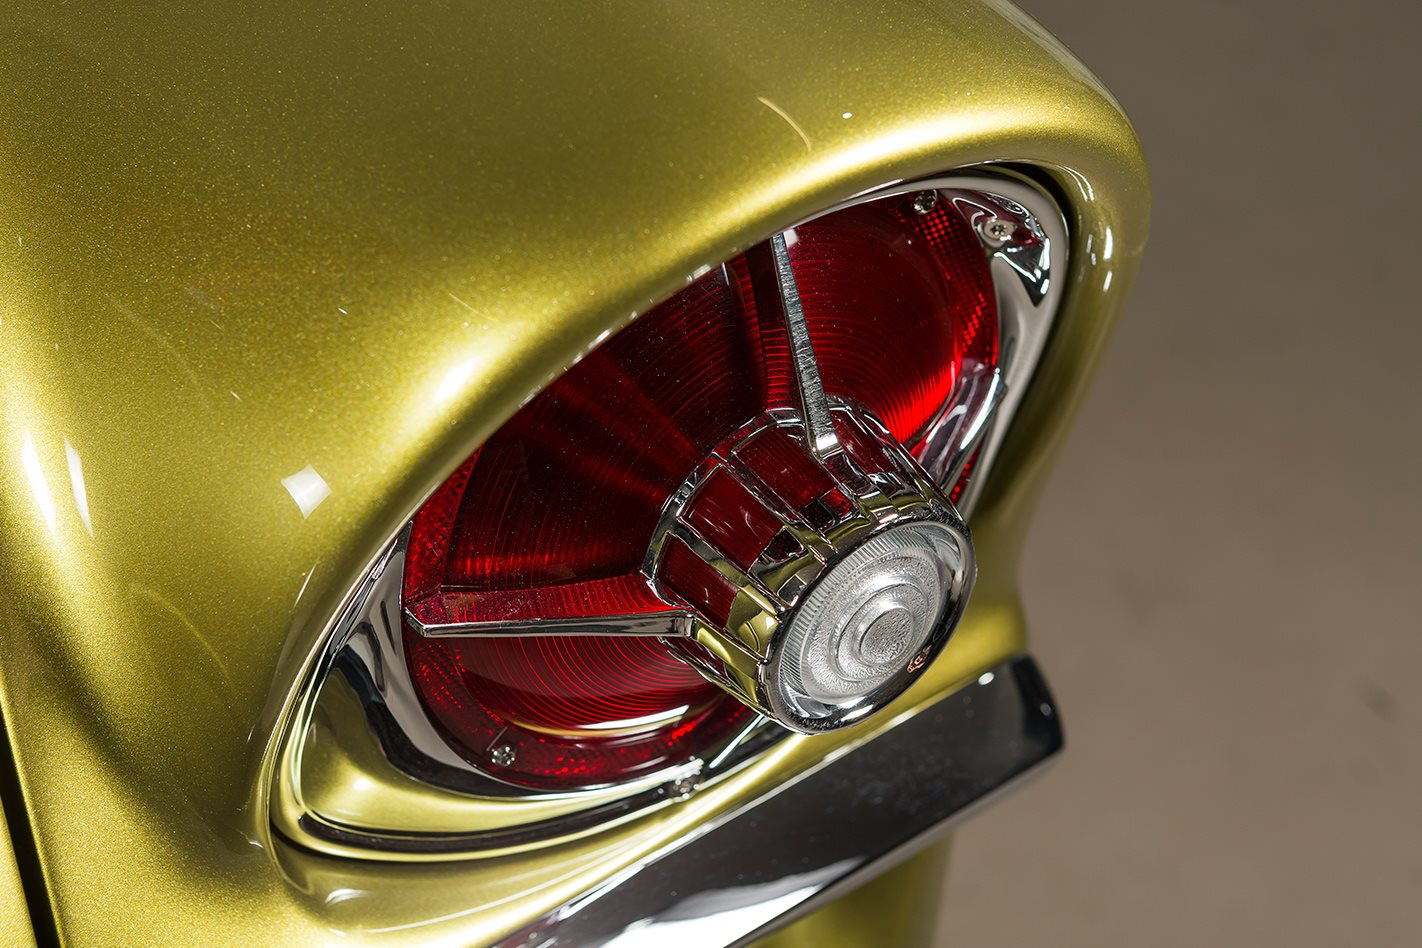 Holden FB Tailspin tail light